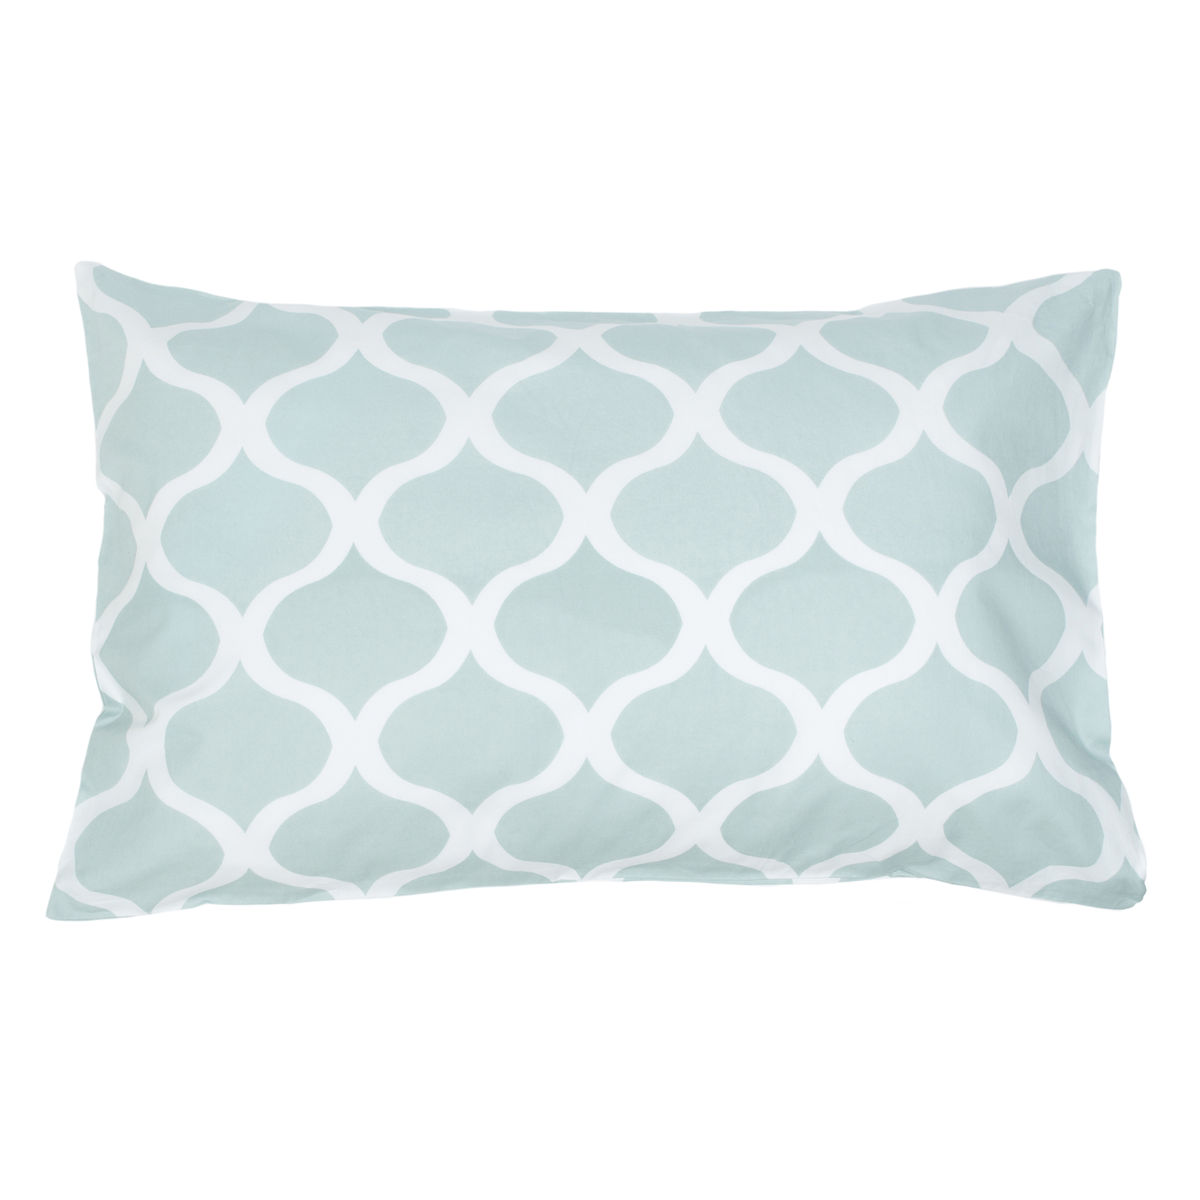 How To Wash Throw Pillow Cases : Uma Blue Pillow Cases (Set of 2) - Allem Studio